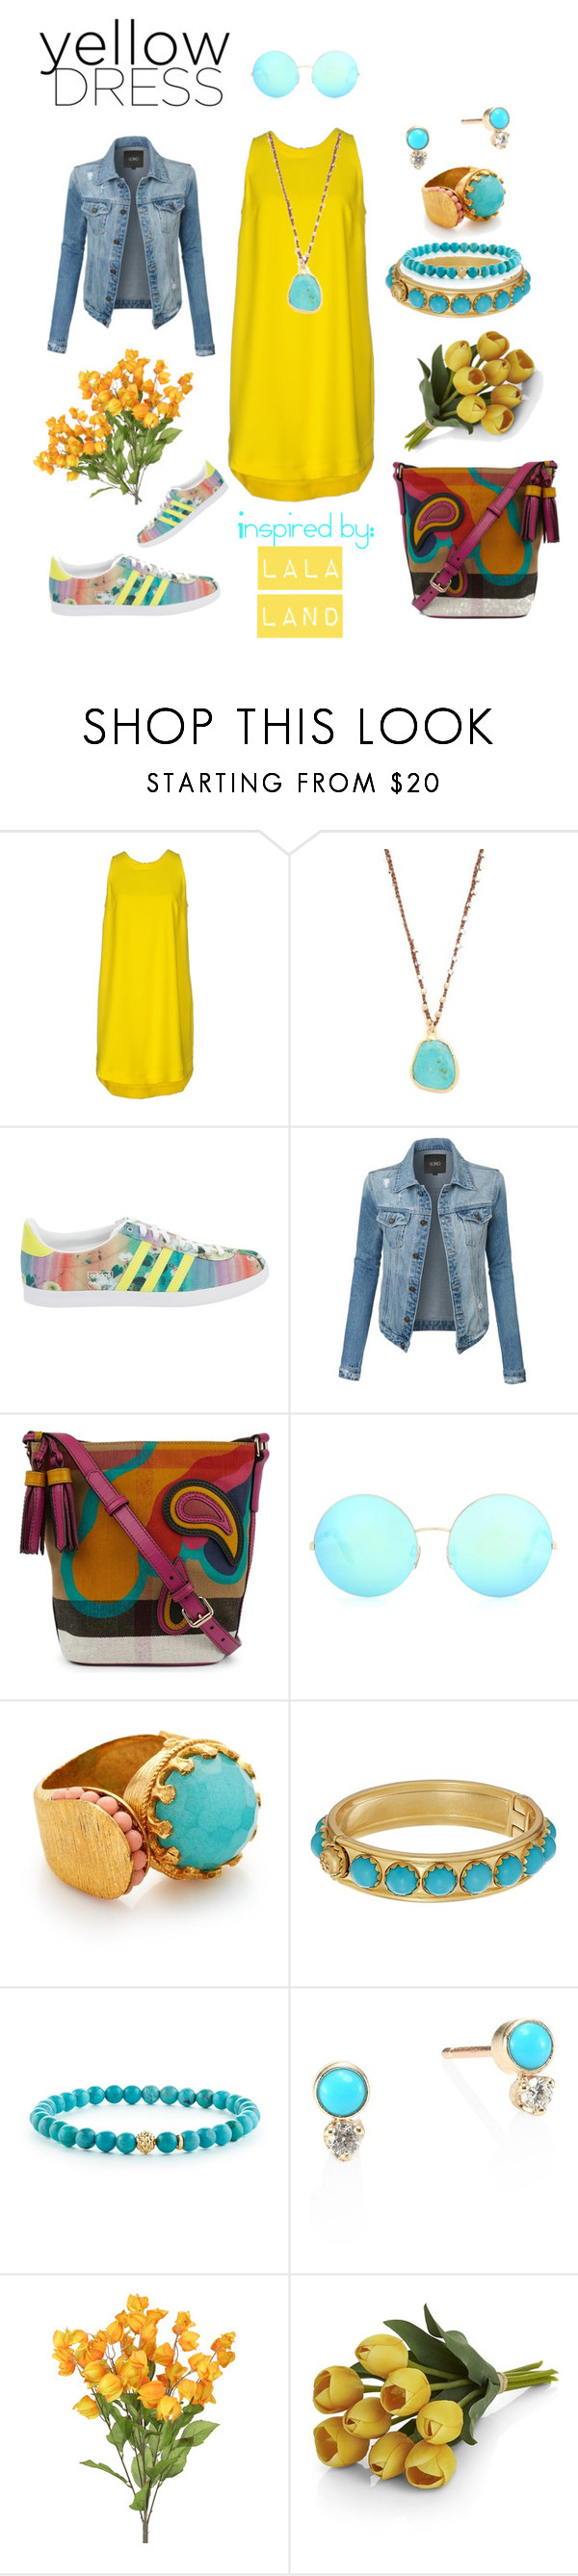 """In La La Land: Yellow Dresses"" by michele-nyc ❤ liked on Polyvore featuring Aniye By, Native Gem, adidas, LE3NO, Burberry, Victoria Beckham, Ottoman Hands, Tory Burch, Lagos and ZoÃ« Chicco"